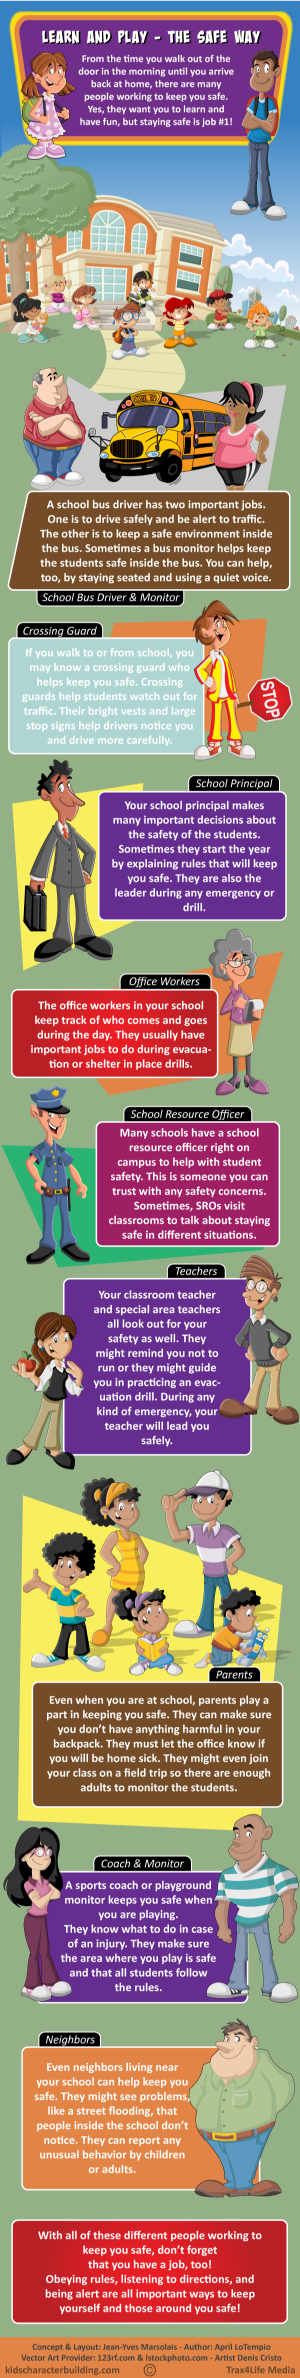 School Safety Roles Worksheets, Poster, PowerPoint and Infographic